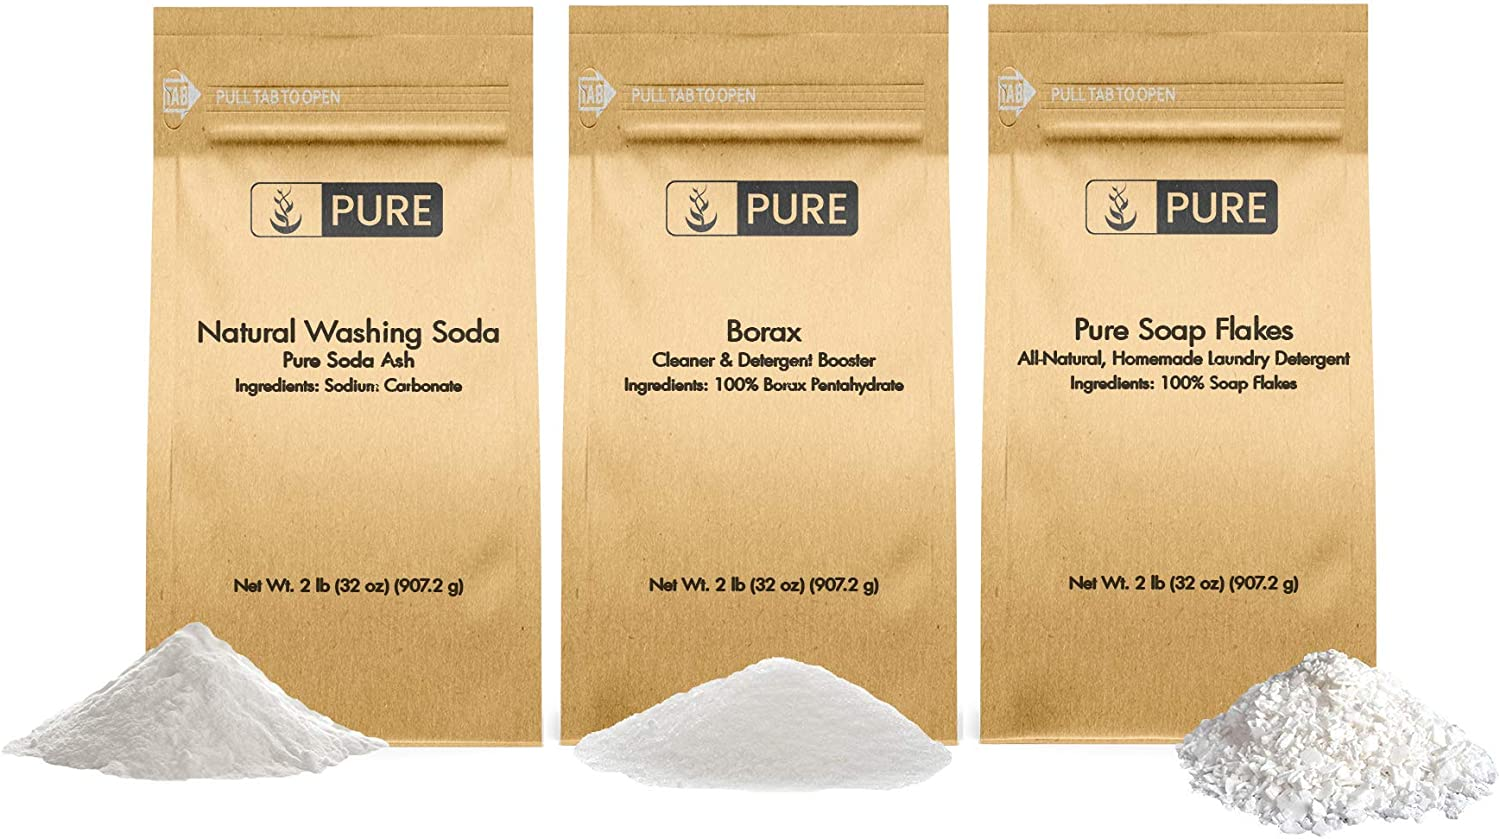 Laundry Soap Kit by Pure Organic Ingredients (2 lbs Each) Borax, Natural Washing Soda, Soap Flakes. Eco-Friendly Packaging, Multi-Purpose Cleaners & Detergent Boosters